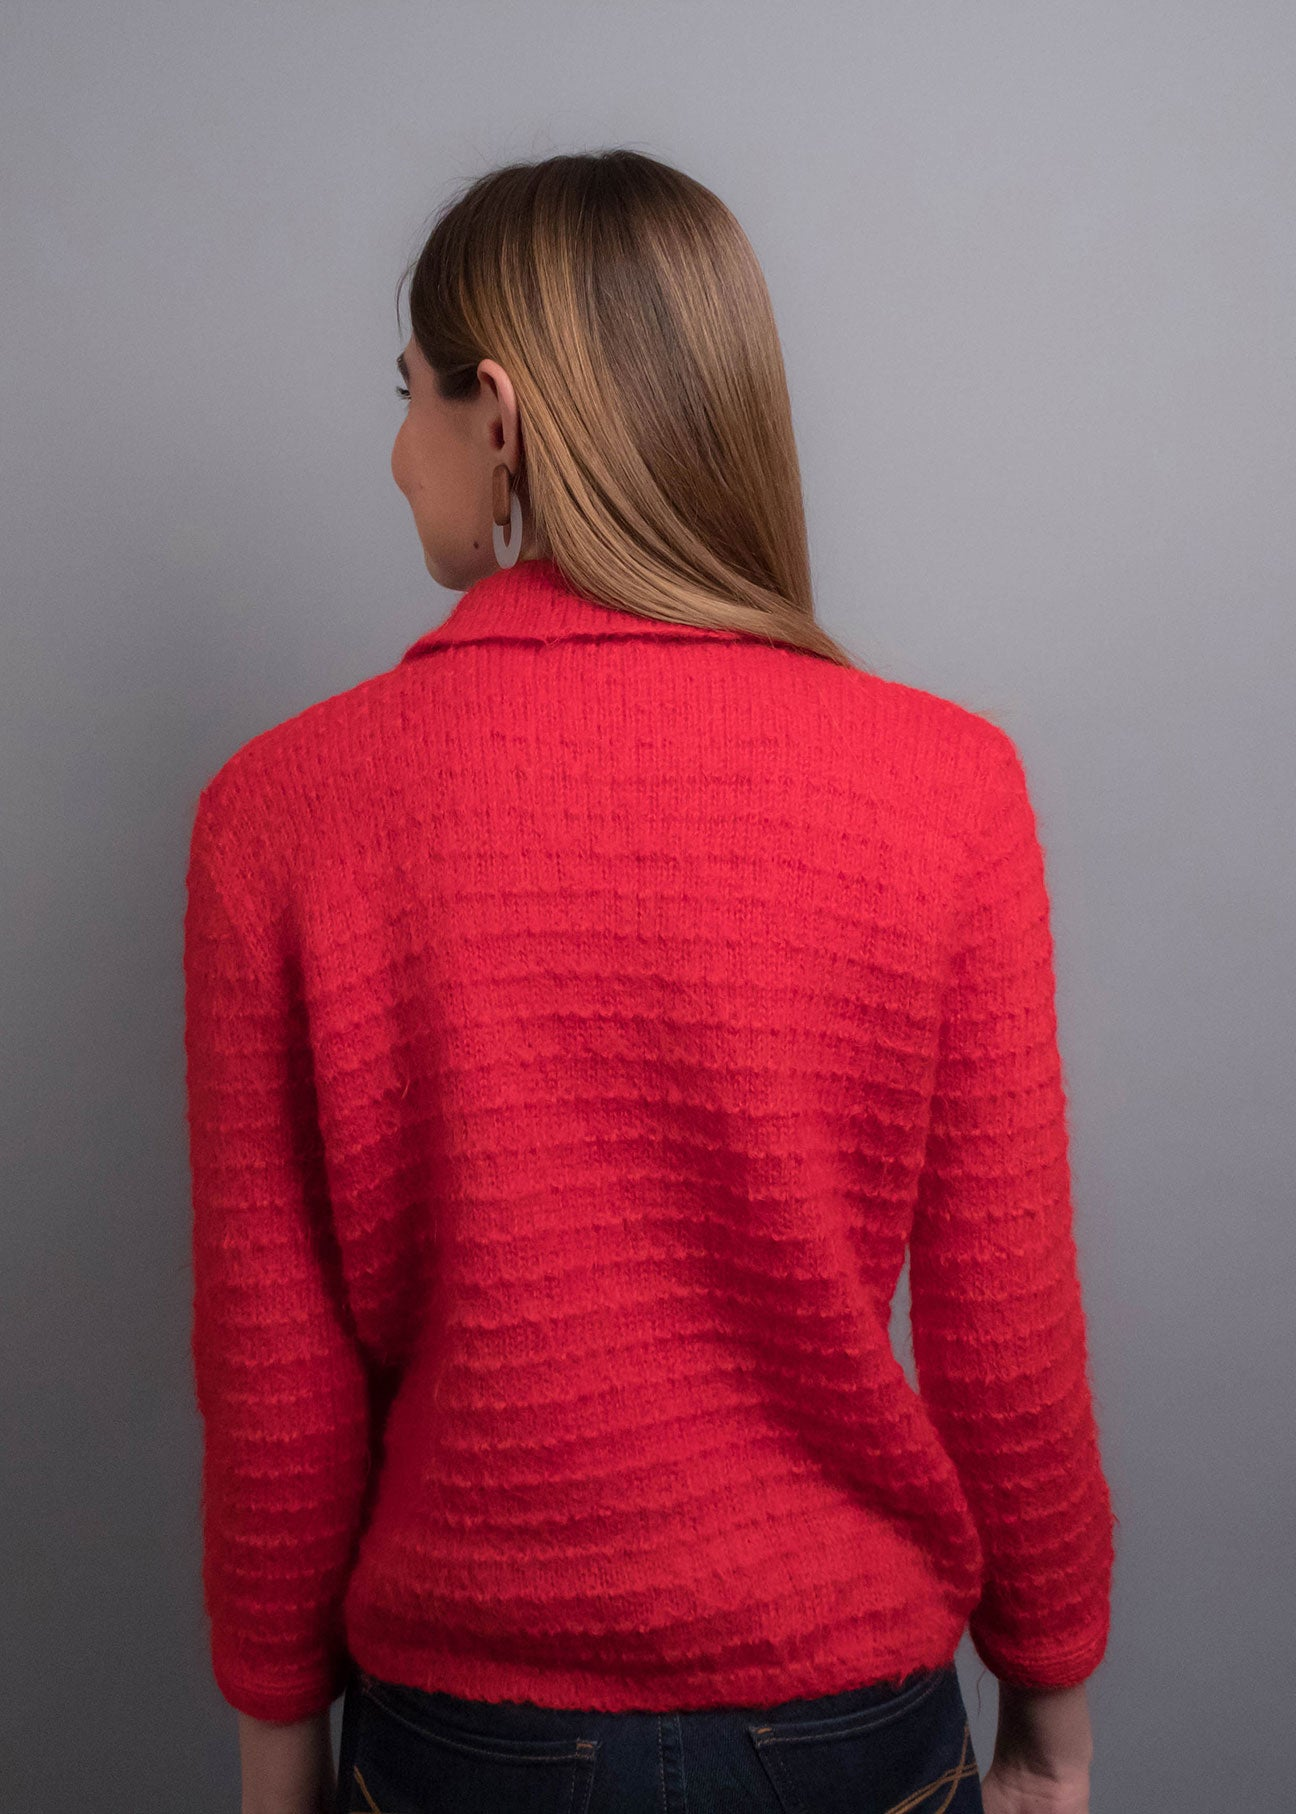 50s Jane Irwill Mohair Sweater